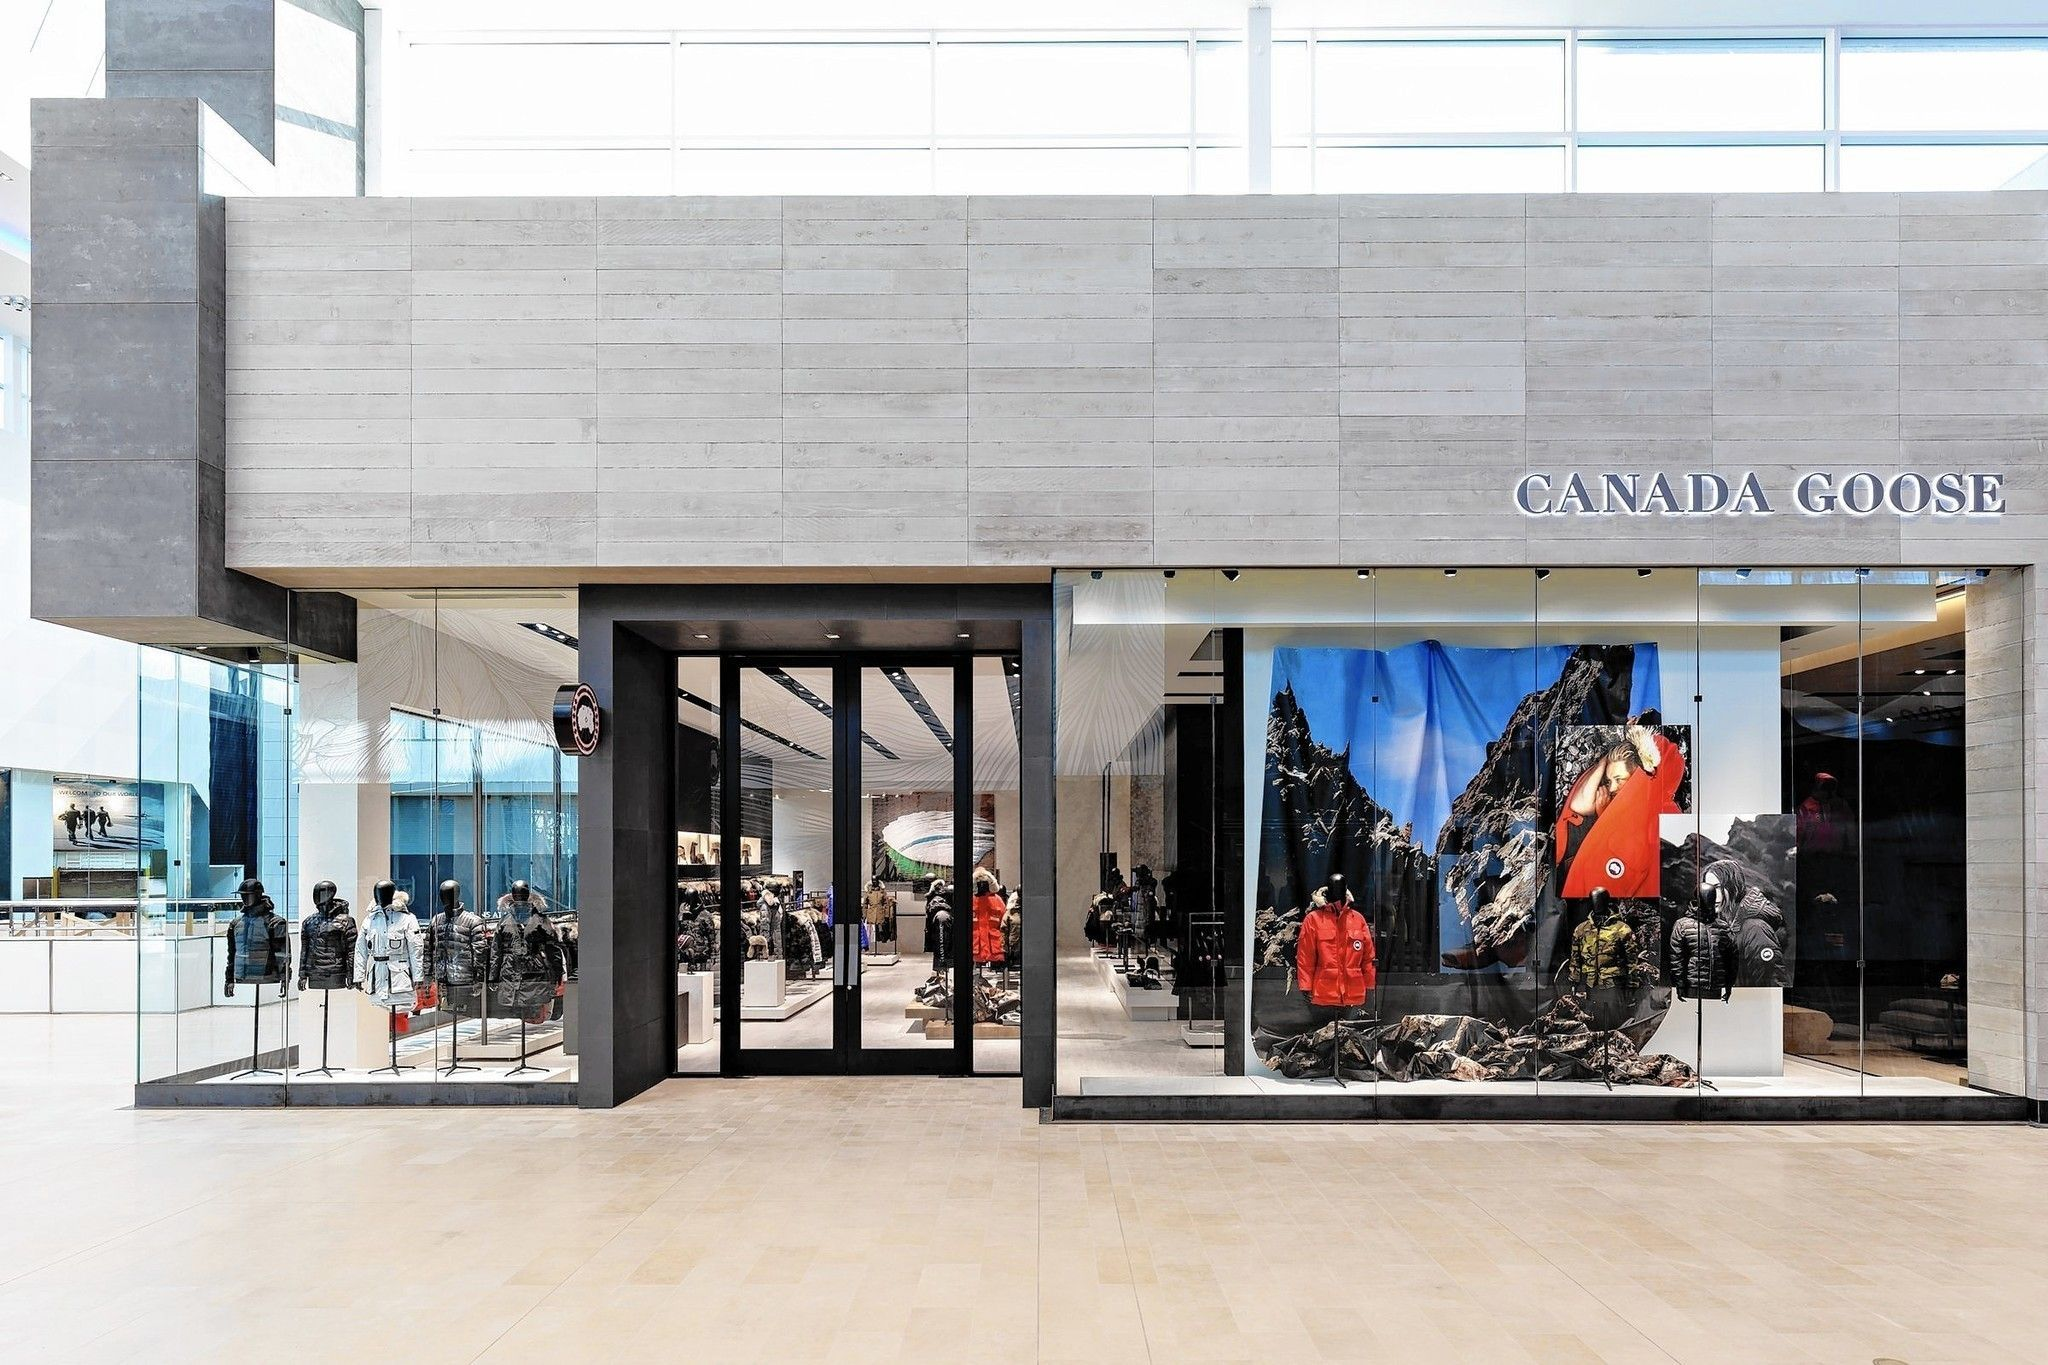 Parka Hyatt Canada Goose Plans Store In Mag Mile Hotel Shop House Plans Shop Window Design Country House Plans